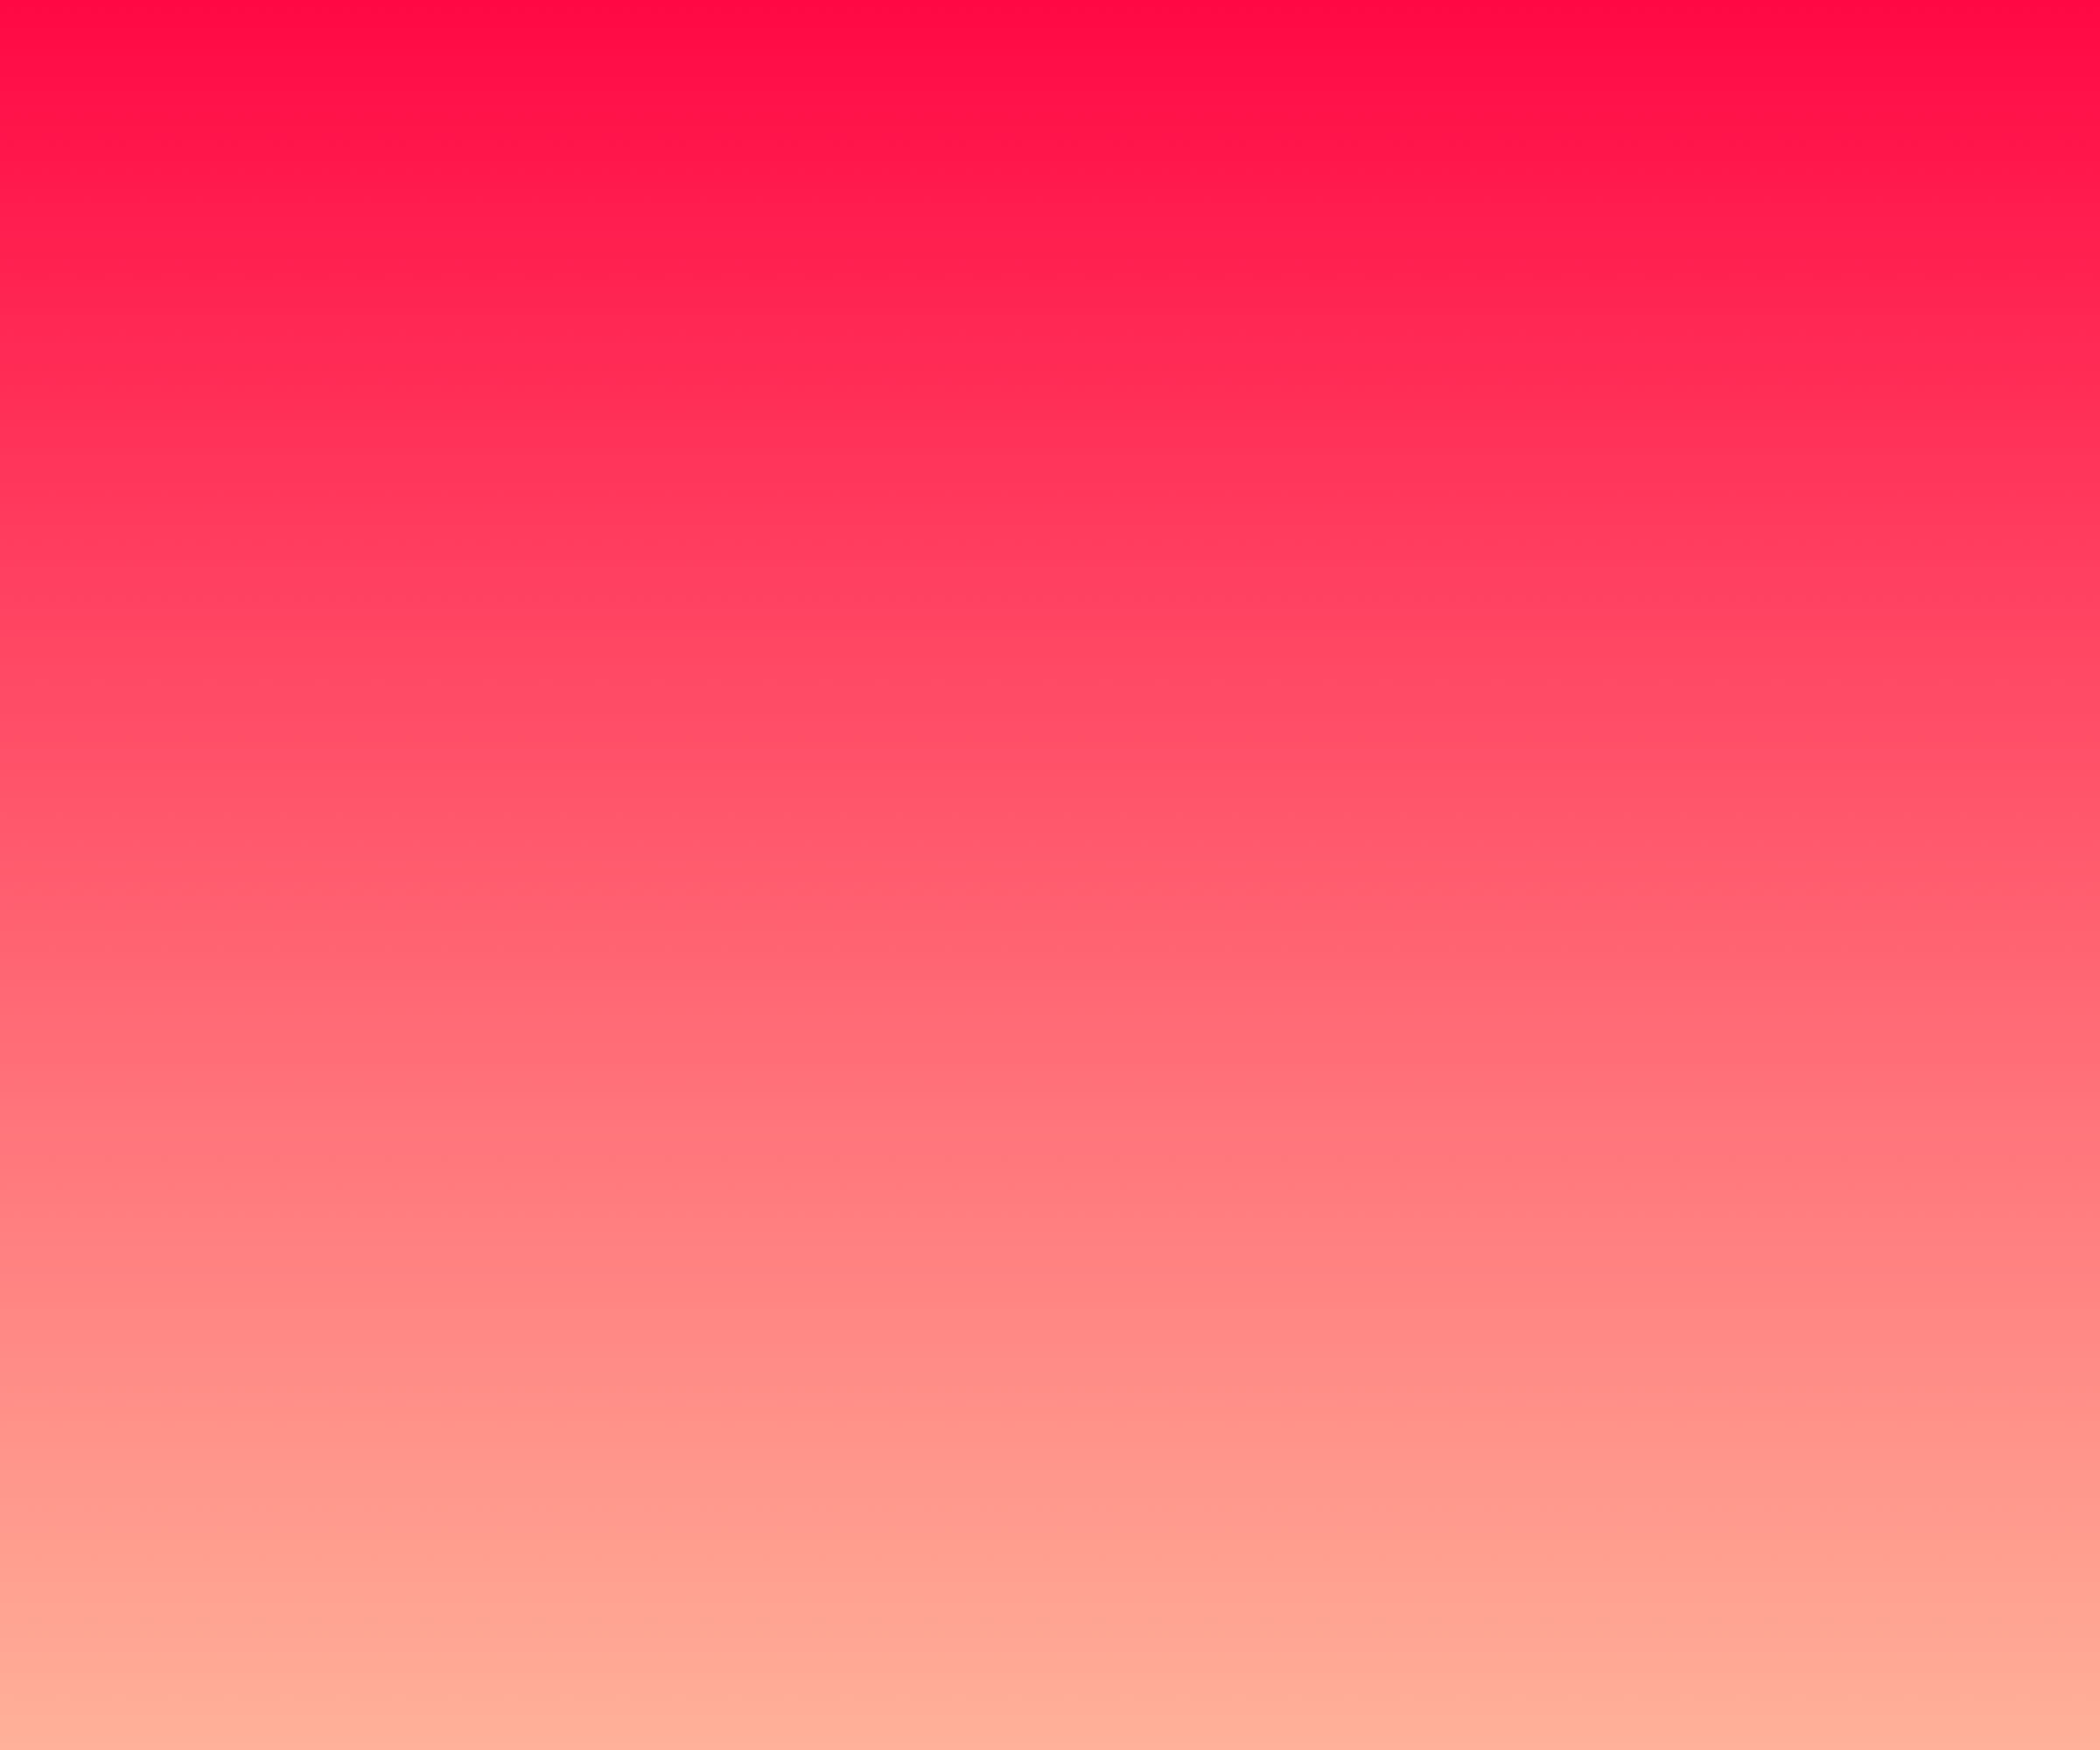 pink_banner_readcolors